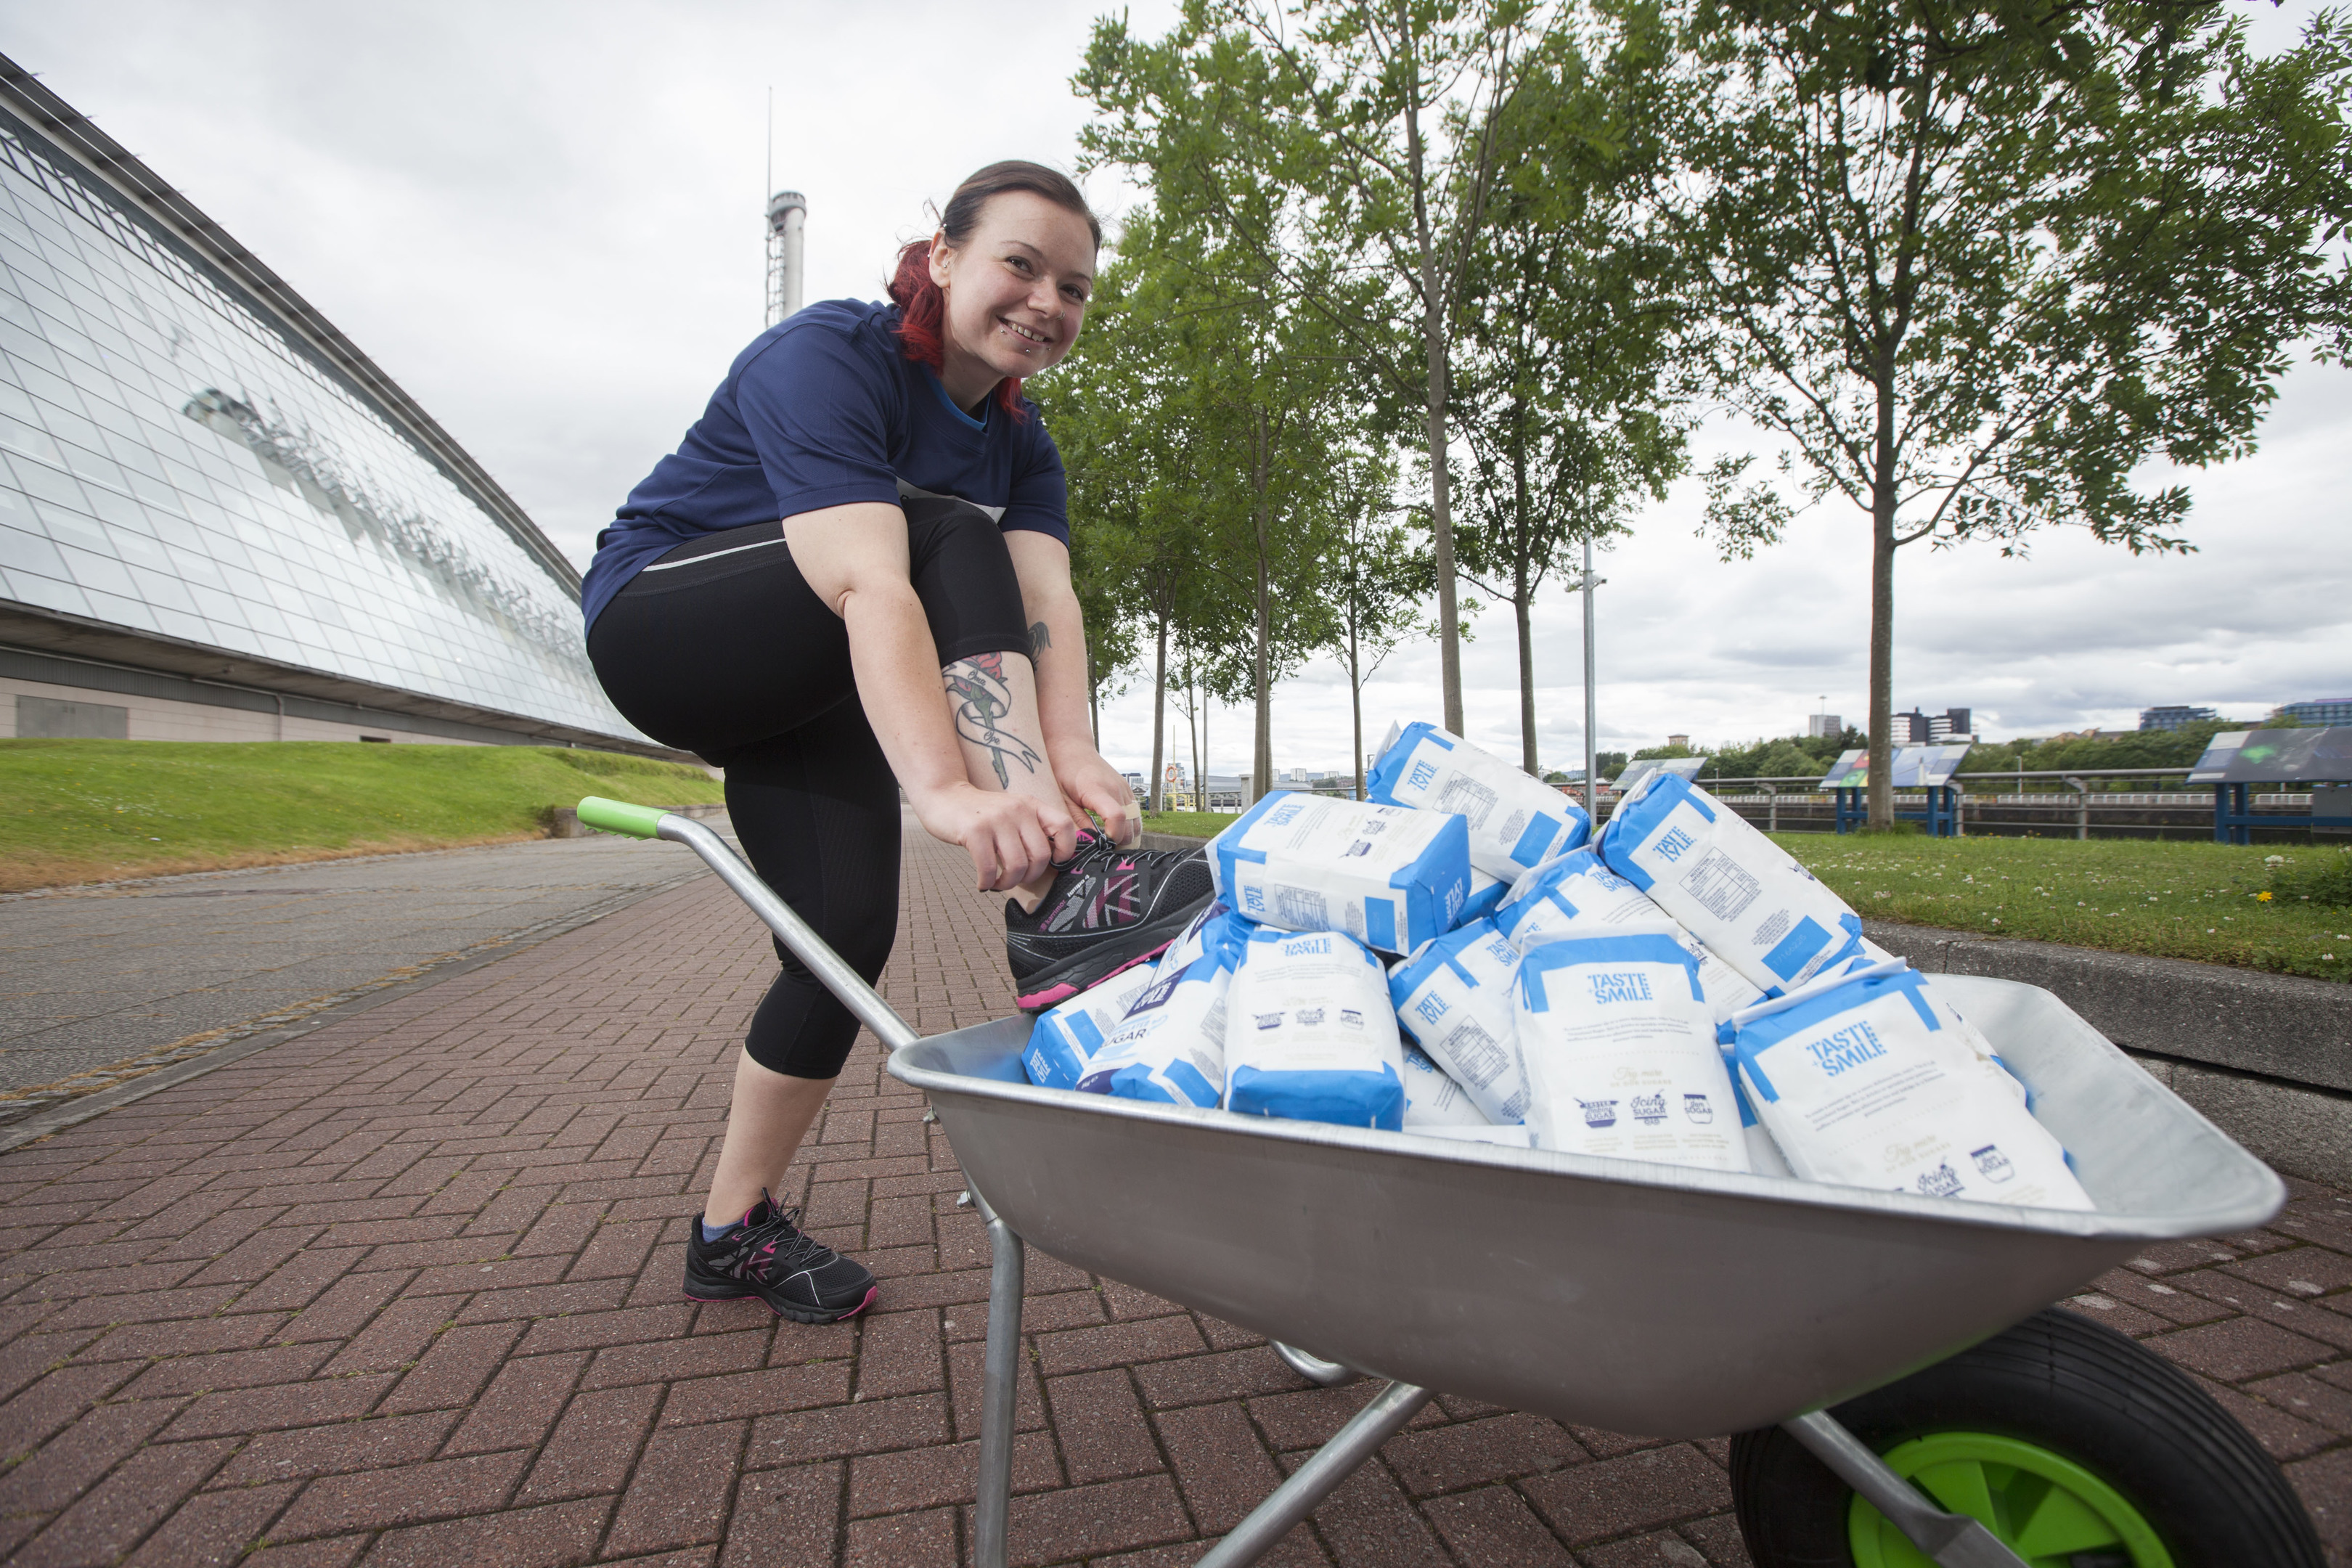 Rhiannon Meyer-Turner lost the equivalent of 126 bags of sugar.